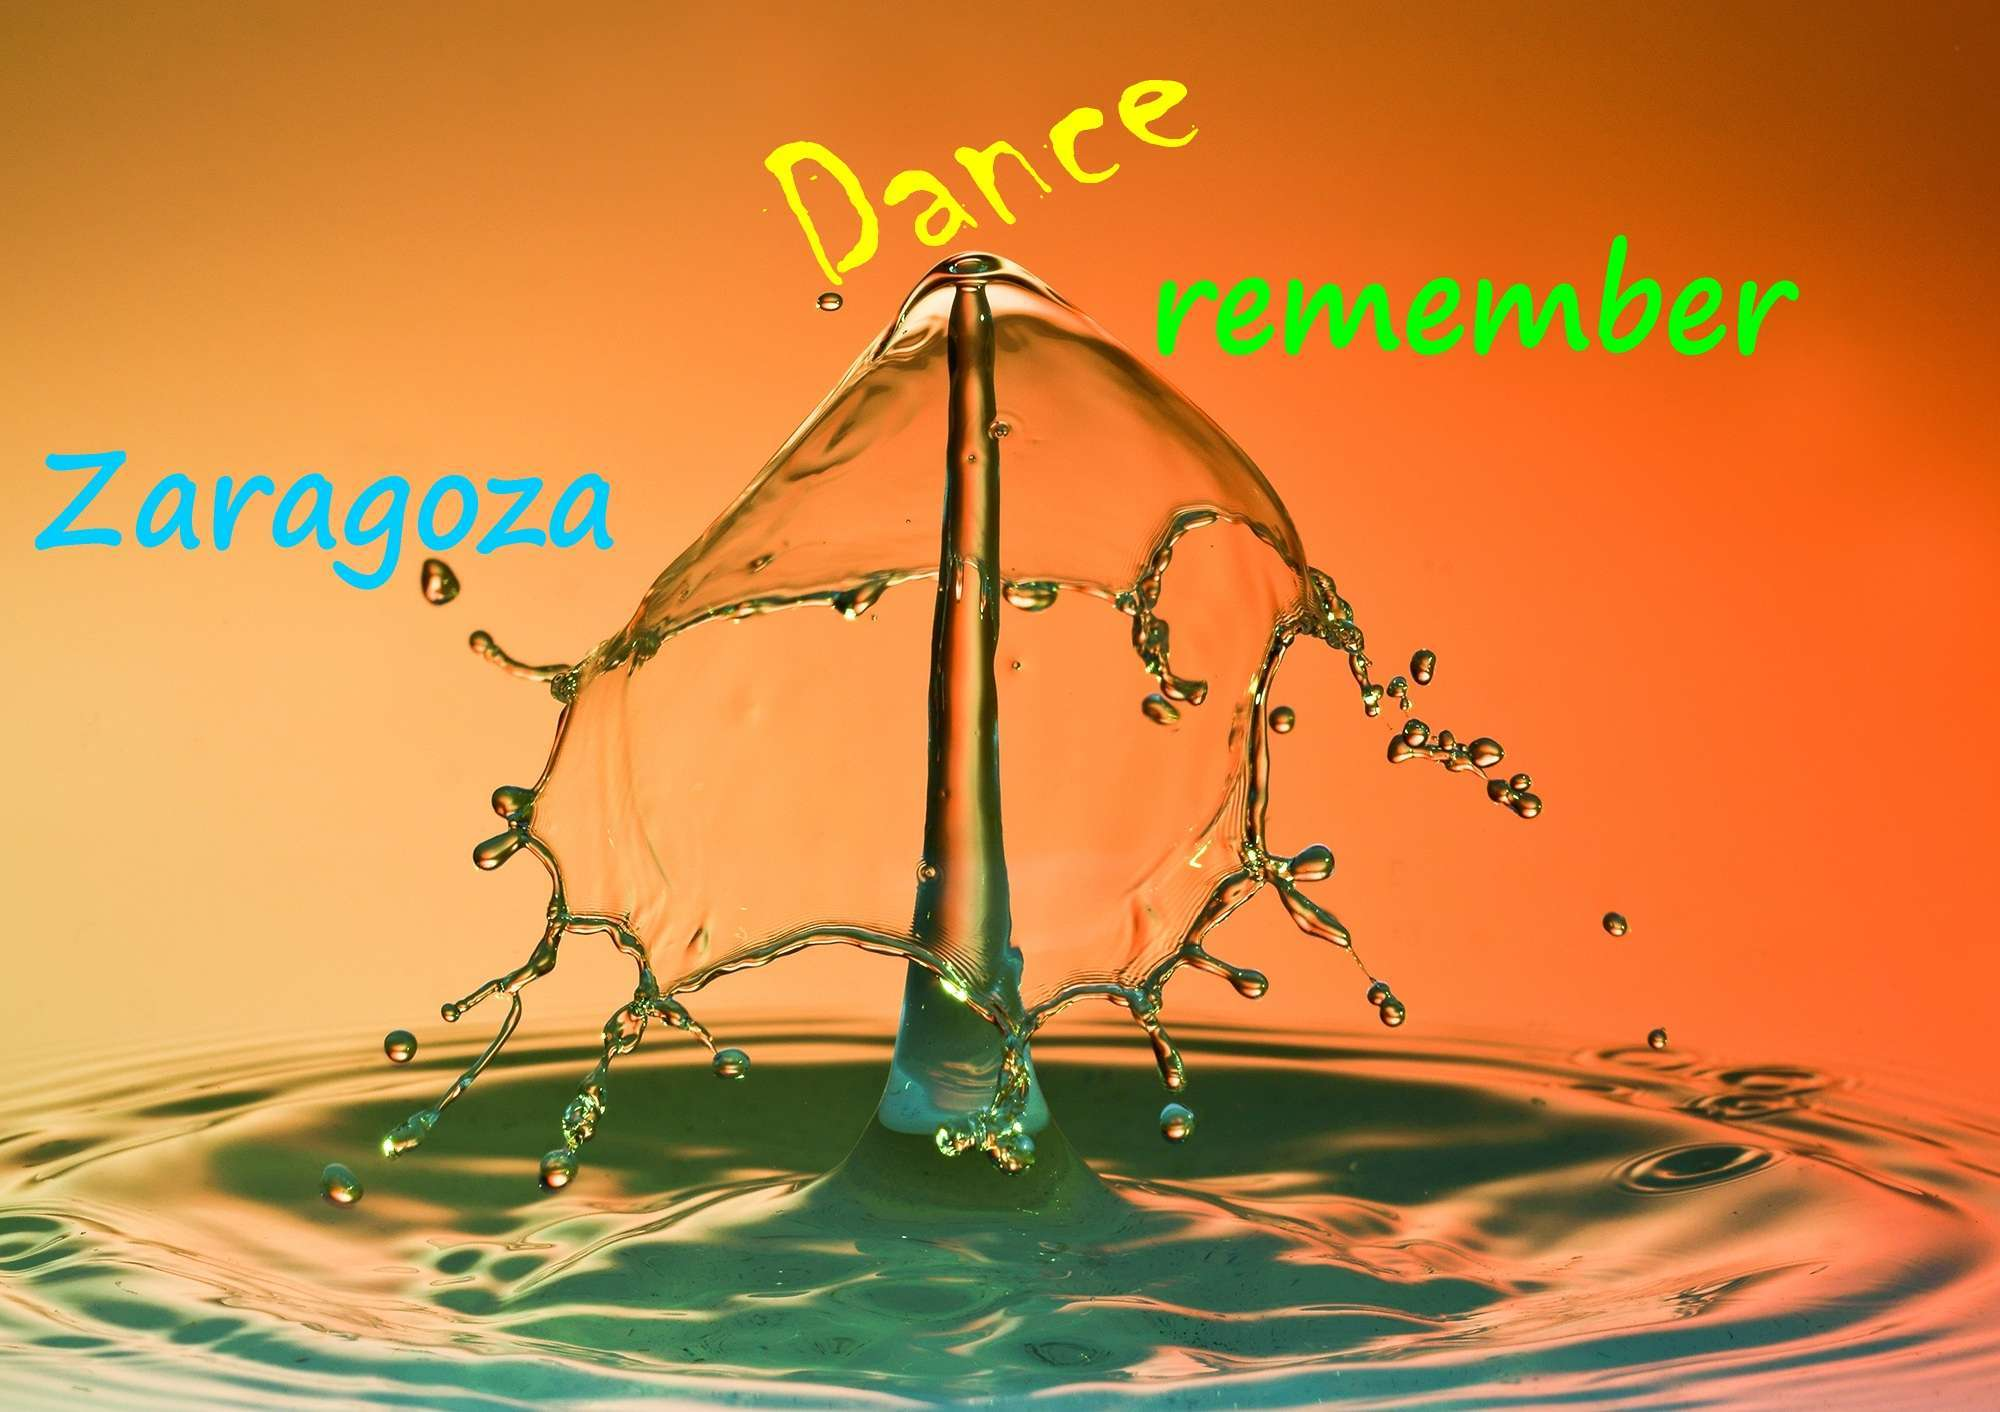 Zaragoza Dance remember